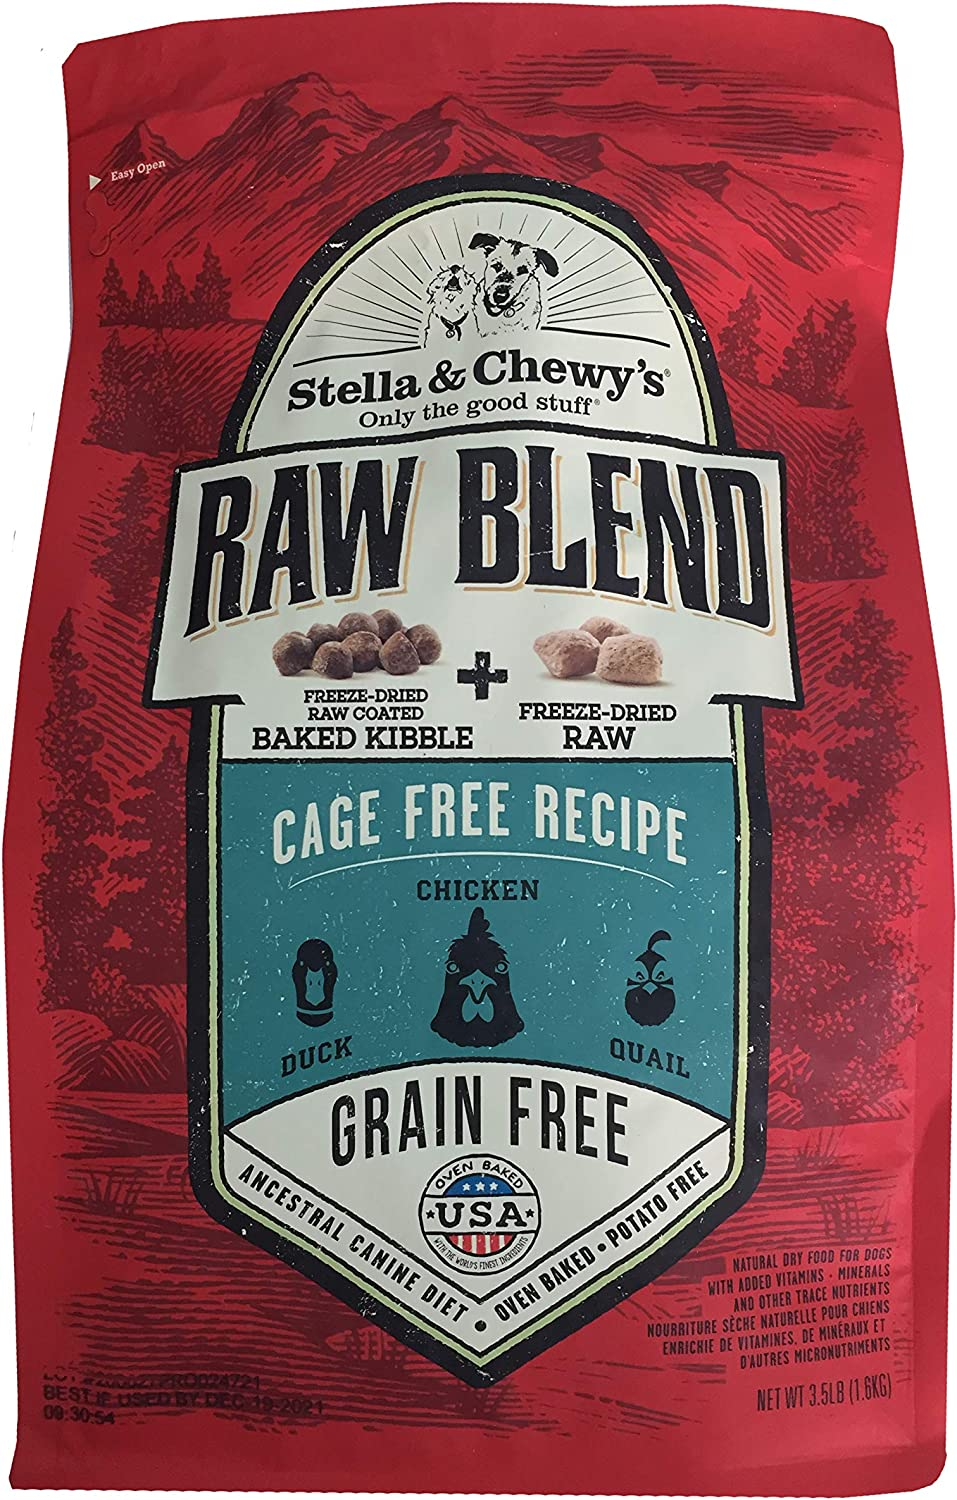 Stella & Chewy'S - Raw Blend Cage-Free Recipe, 3.5Lbs